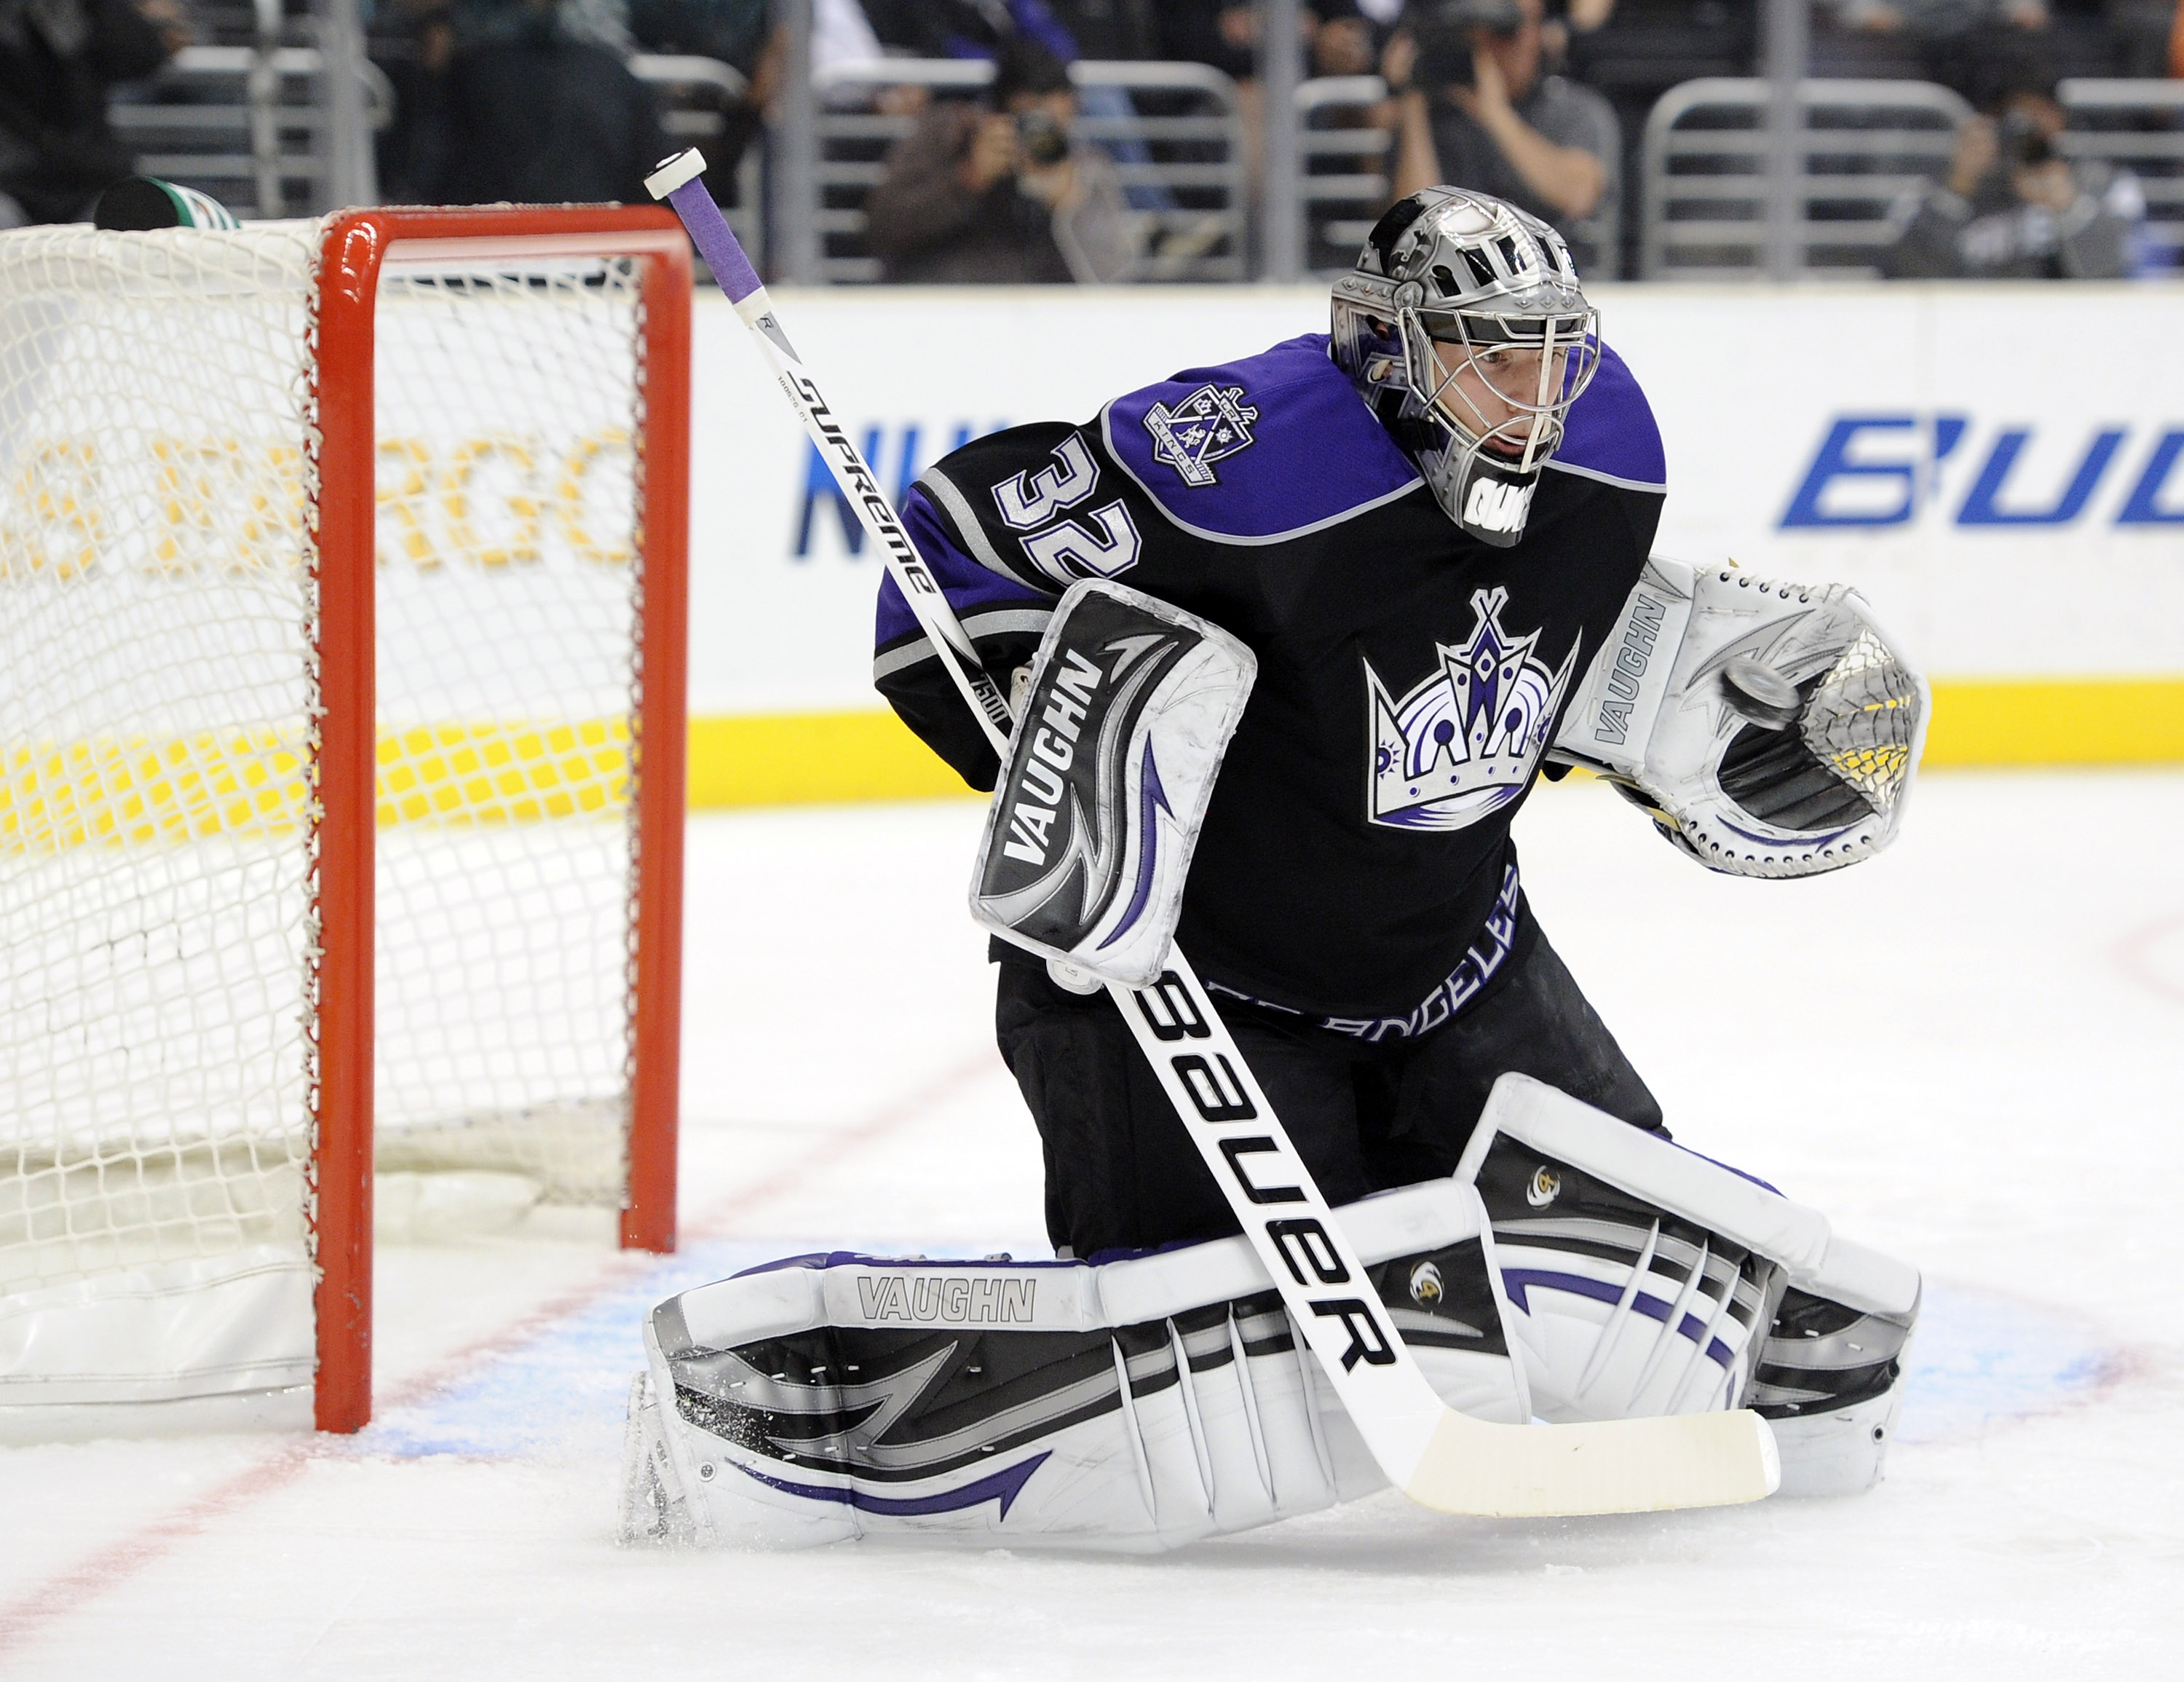 Jon Quick has been big in goal for the Kings